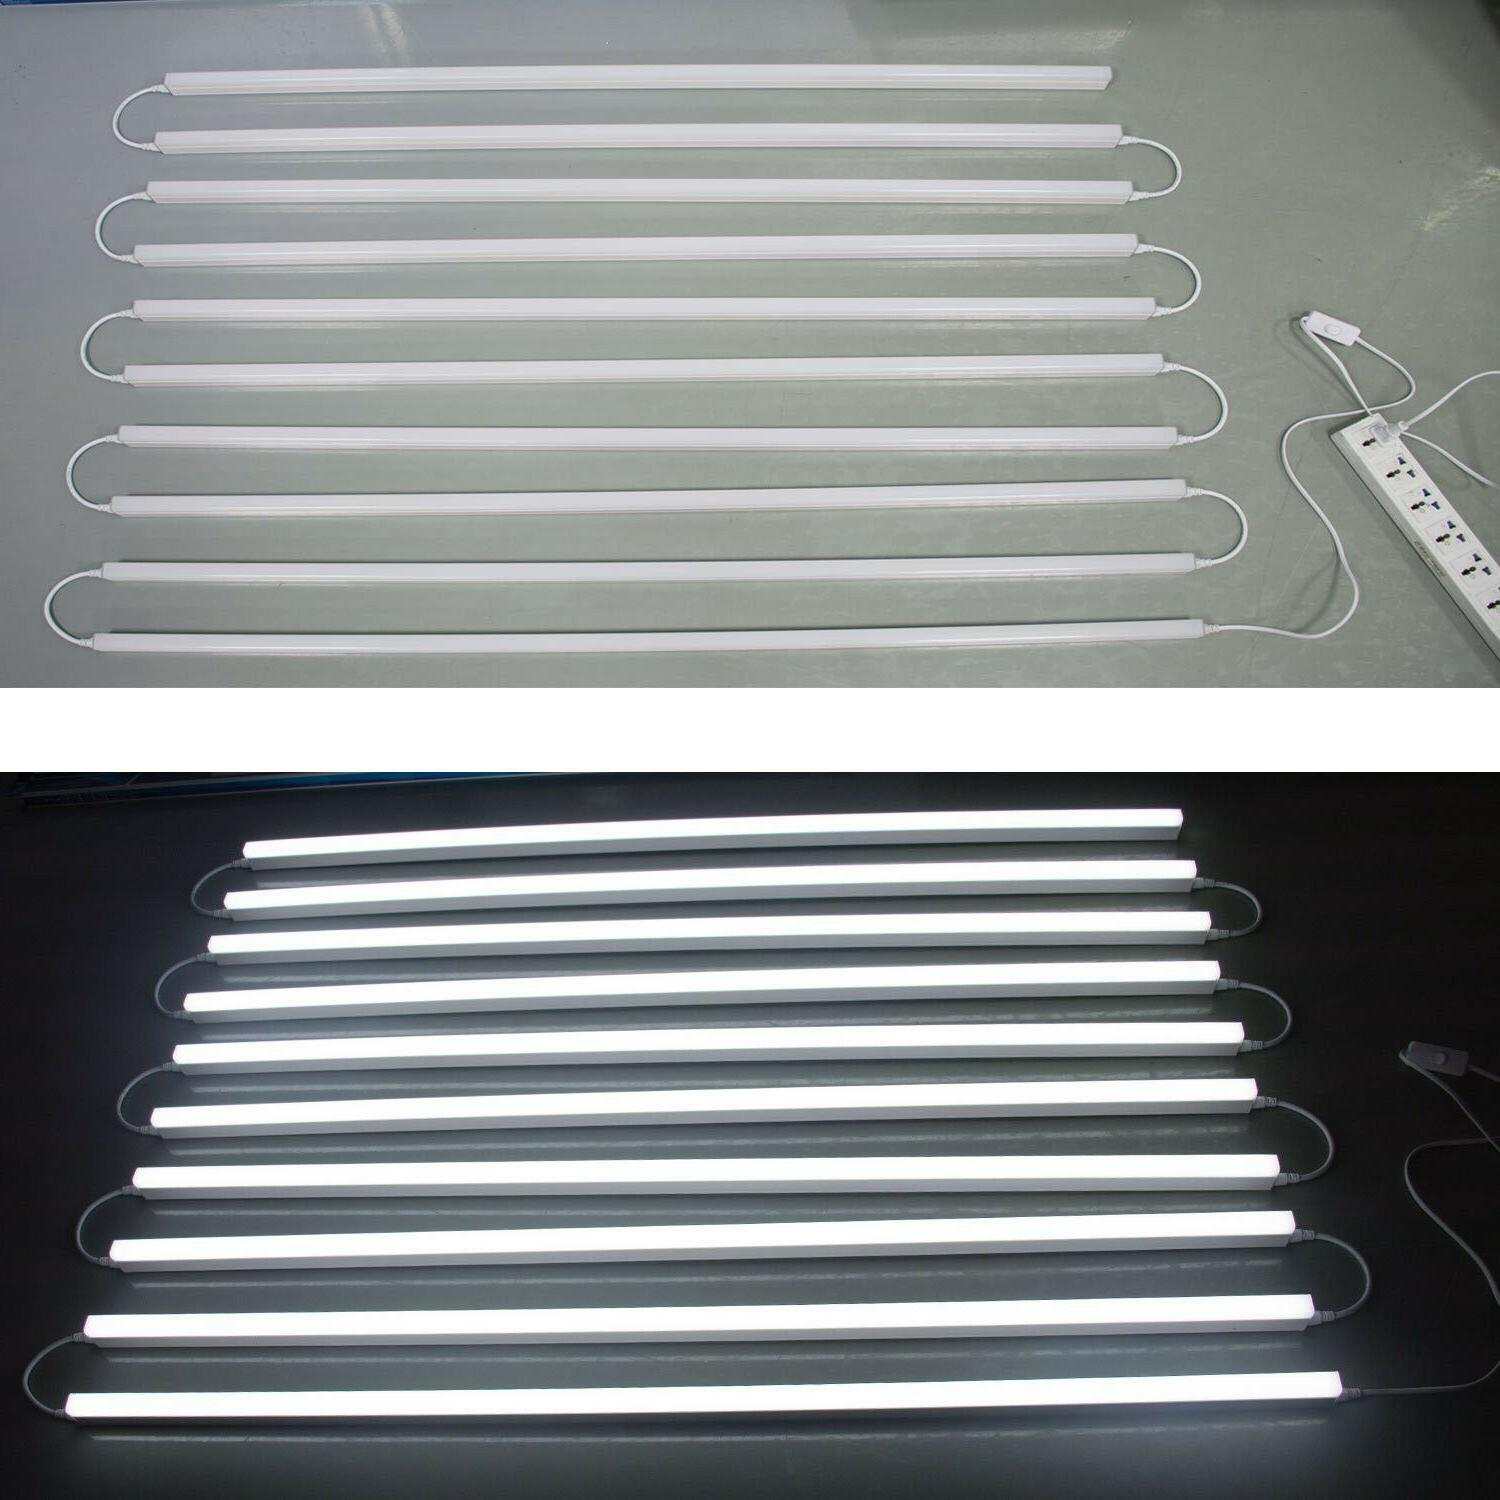 10 PACK Linkable LED Shop 6000K Daylight Utility Ceiling